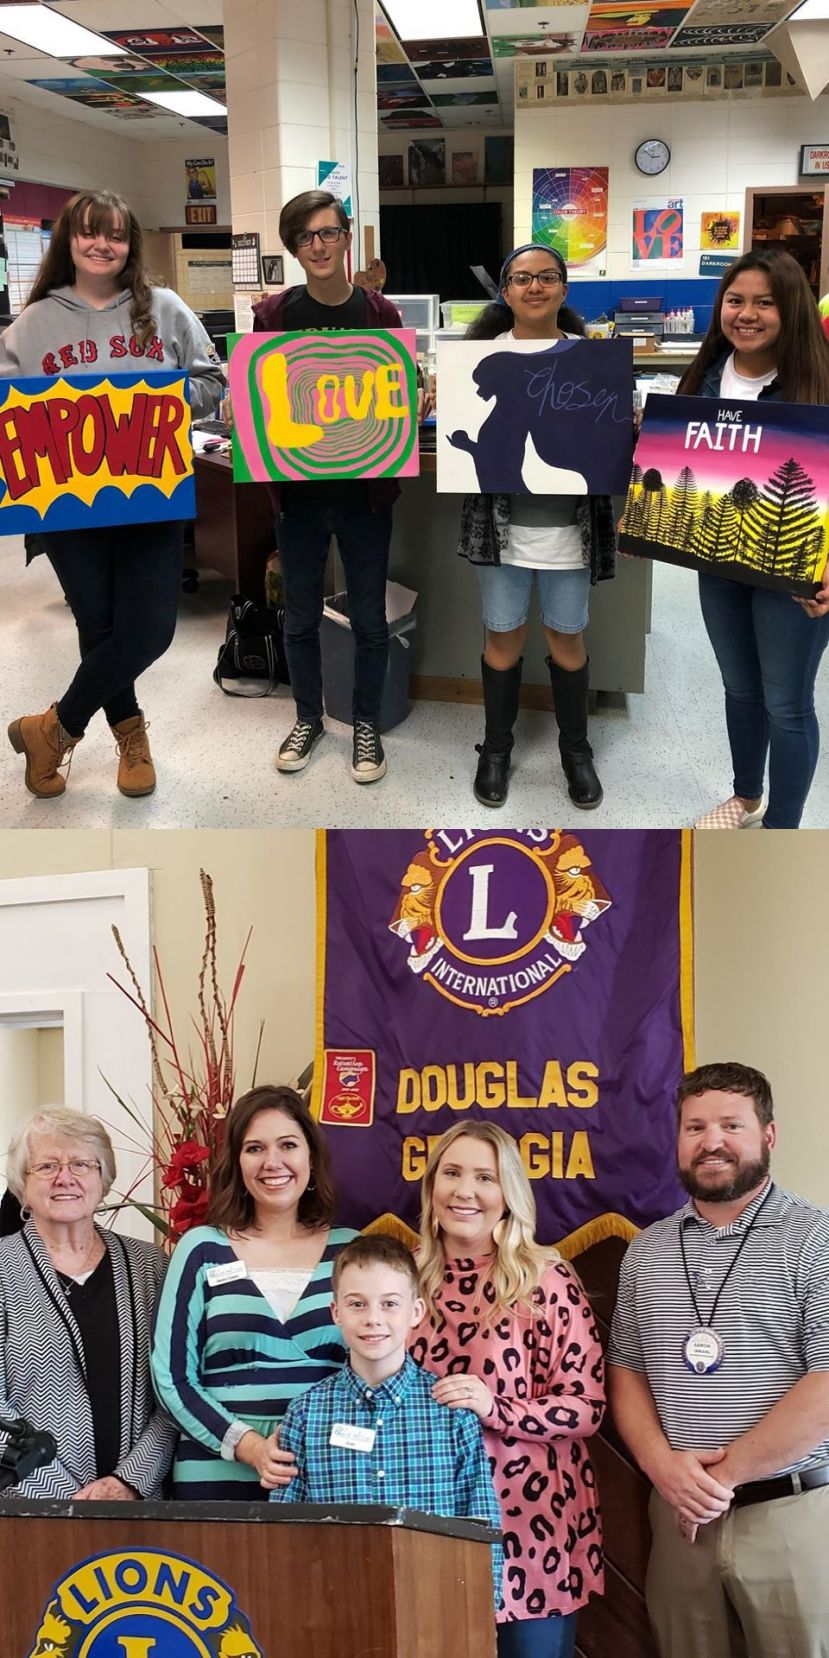 Top photo: CHS art students Daniela Cruz, Brian Harrell, Aurora Martinez, Kimberly Molina. Bottom photo: From left to right: Volunteer Lois Cliett, Volunteer Evan Colson, Intern Hanna Roberts, Lions Club President and Called to Care volunteer, Aaron Shearl.